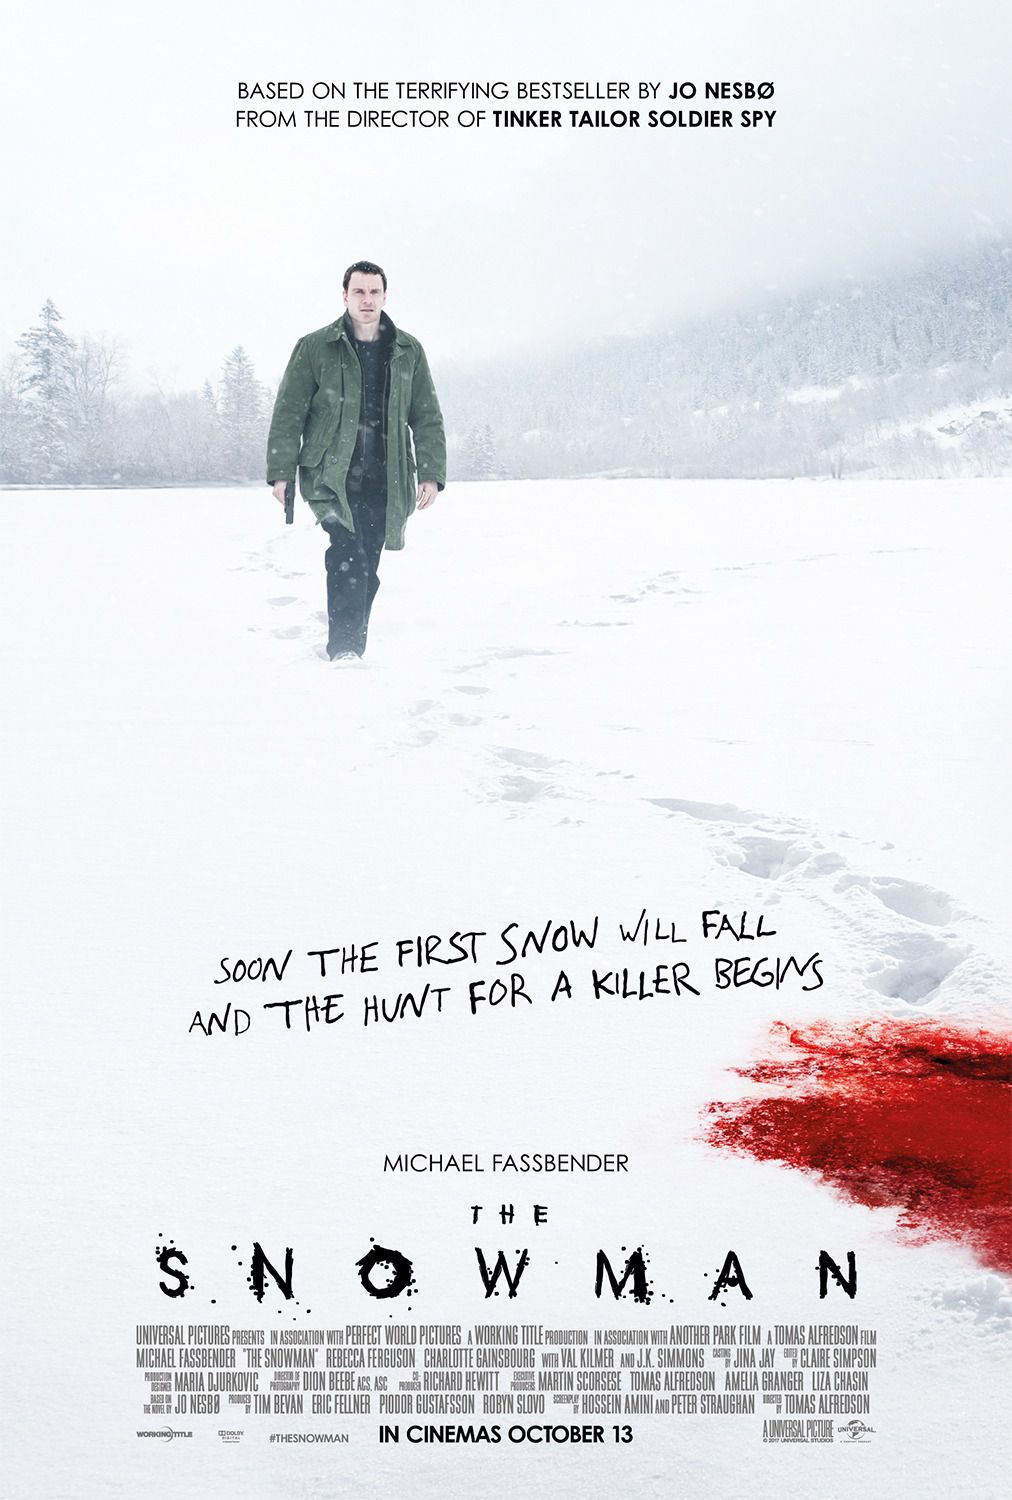 Snowman ... based on the terrifuing bestseller by Jo Nesbø - soon the first snow will fall and the hunt for a killer begins - Michael Fassbender - Rebecca Ferguson - Charlotte Gainsbourg - Val Kilmer - J.K. Simmons - film horror poster